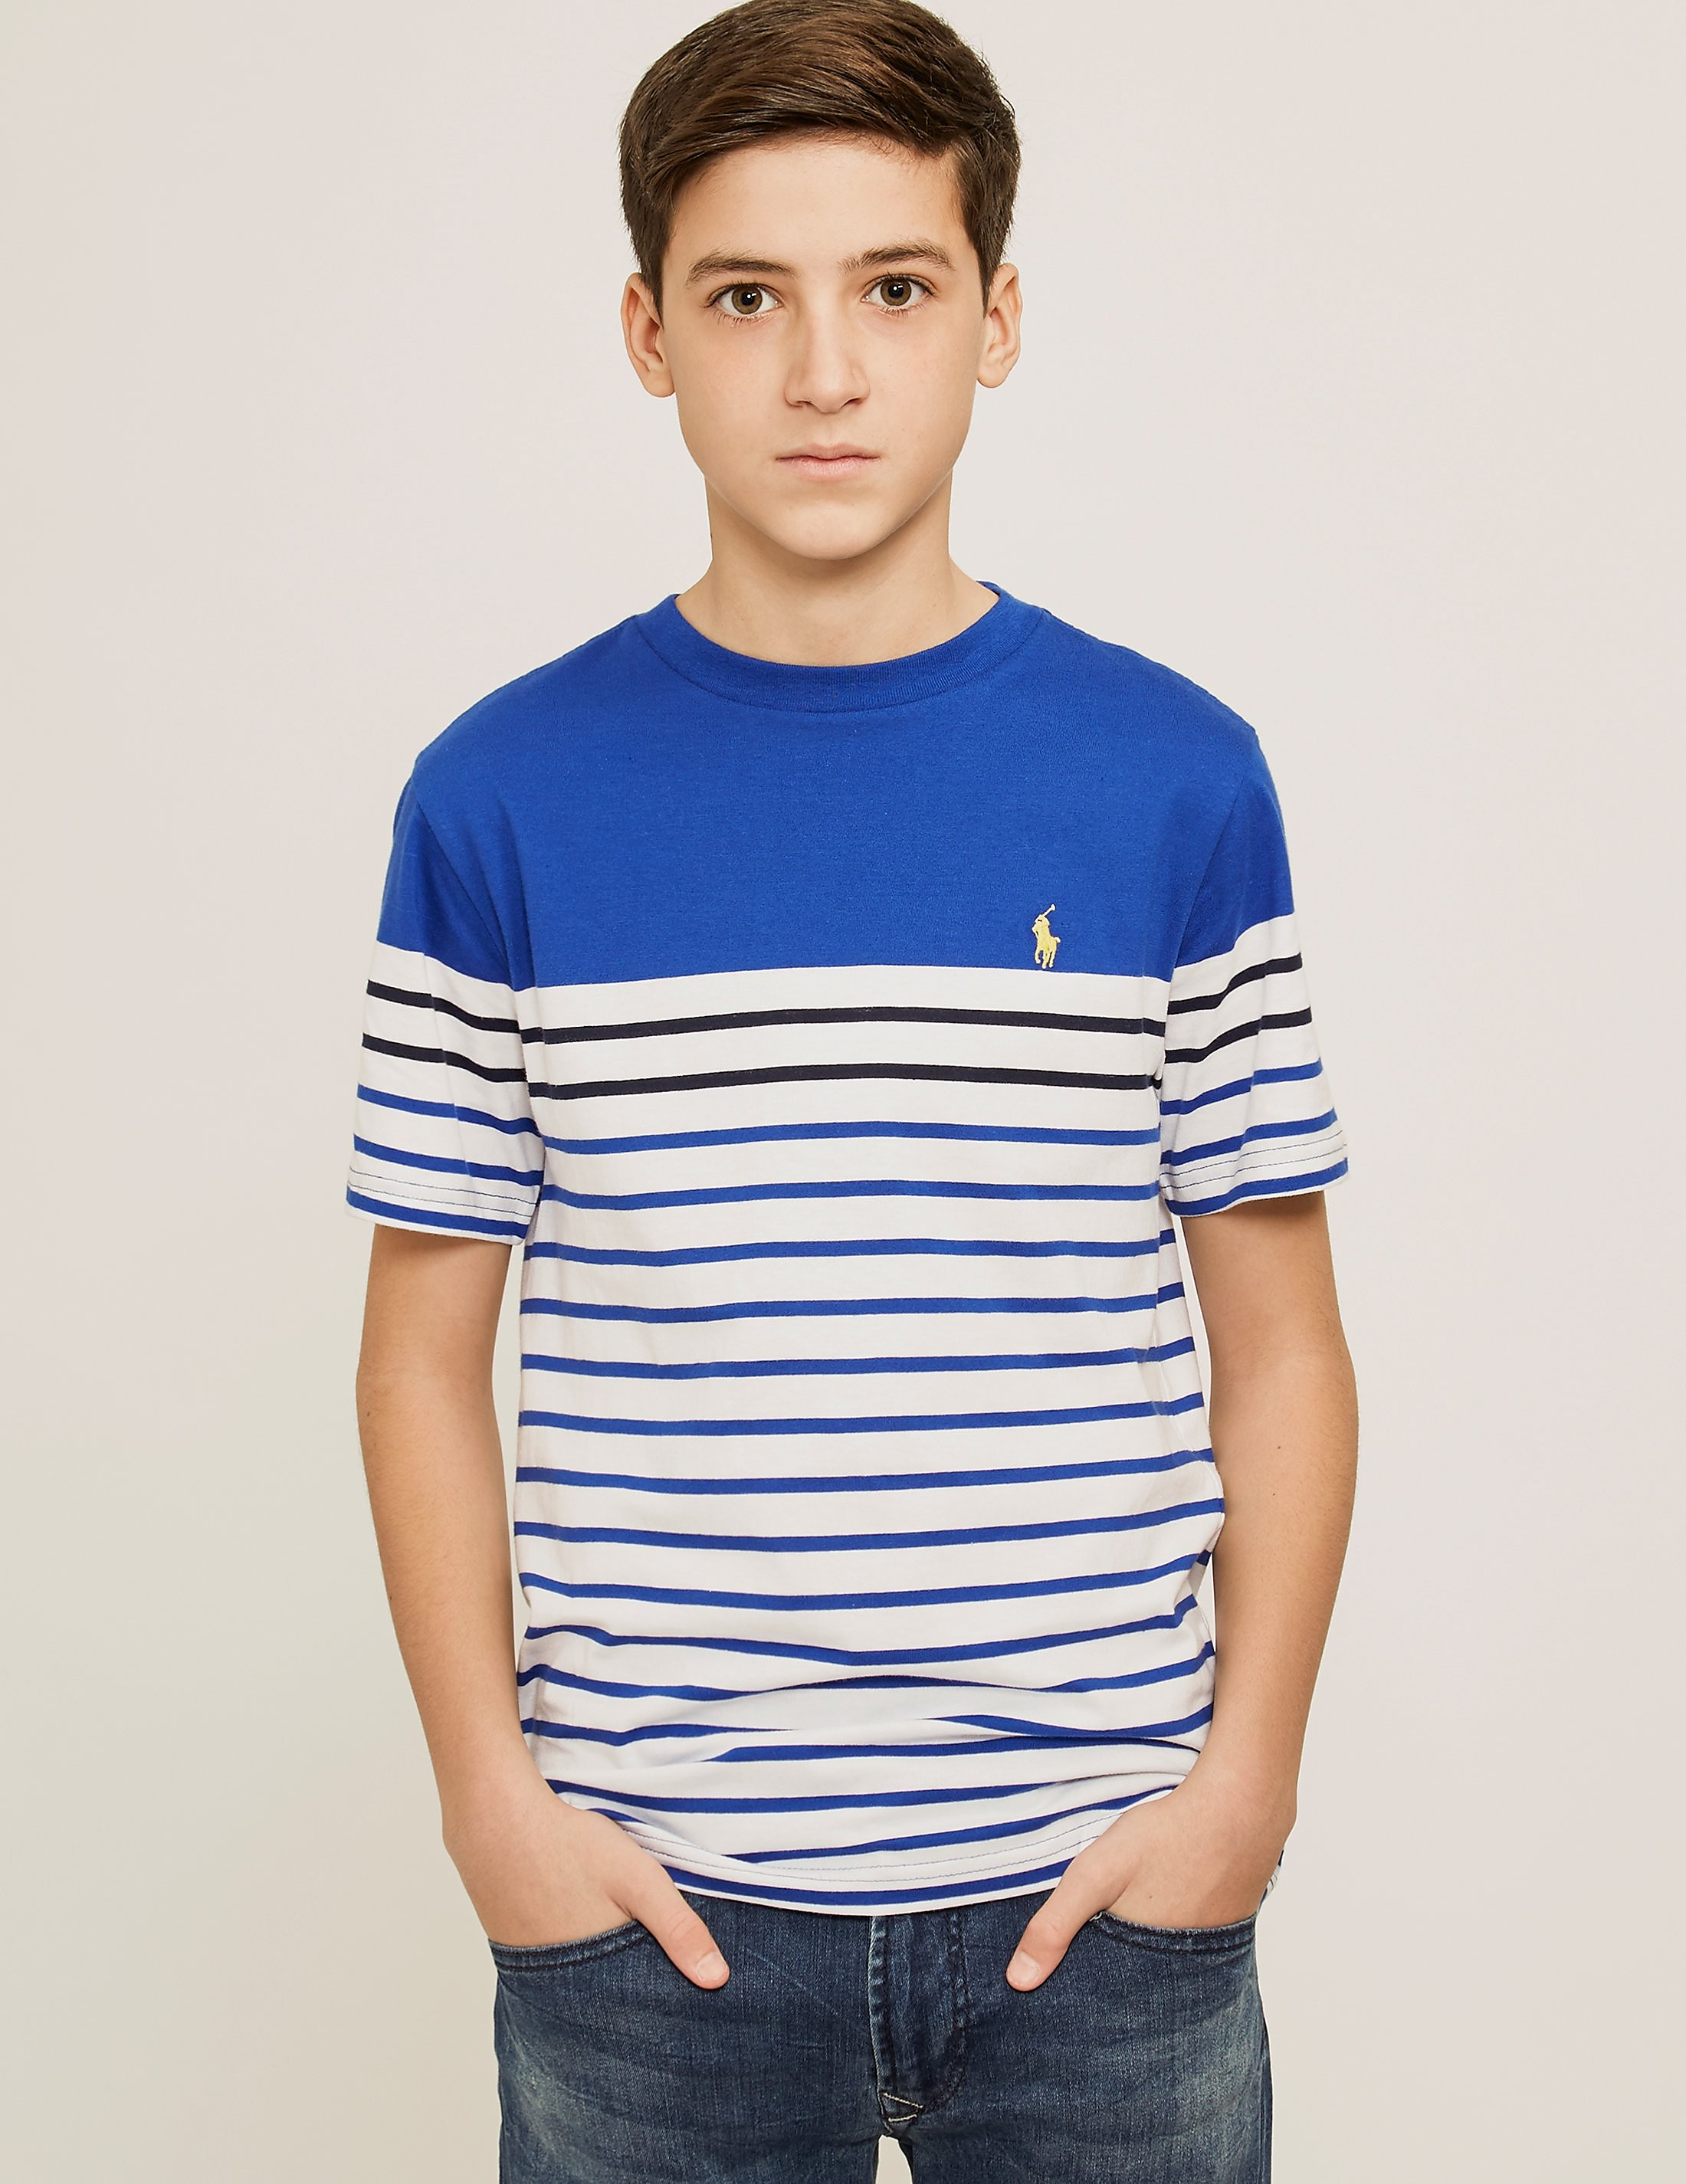 Polo Ralph Lauren Stripe Crew Short Sleeve T-Shirt